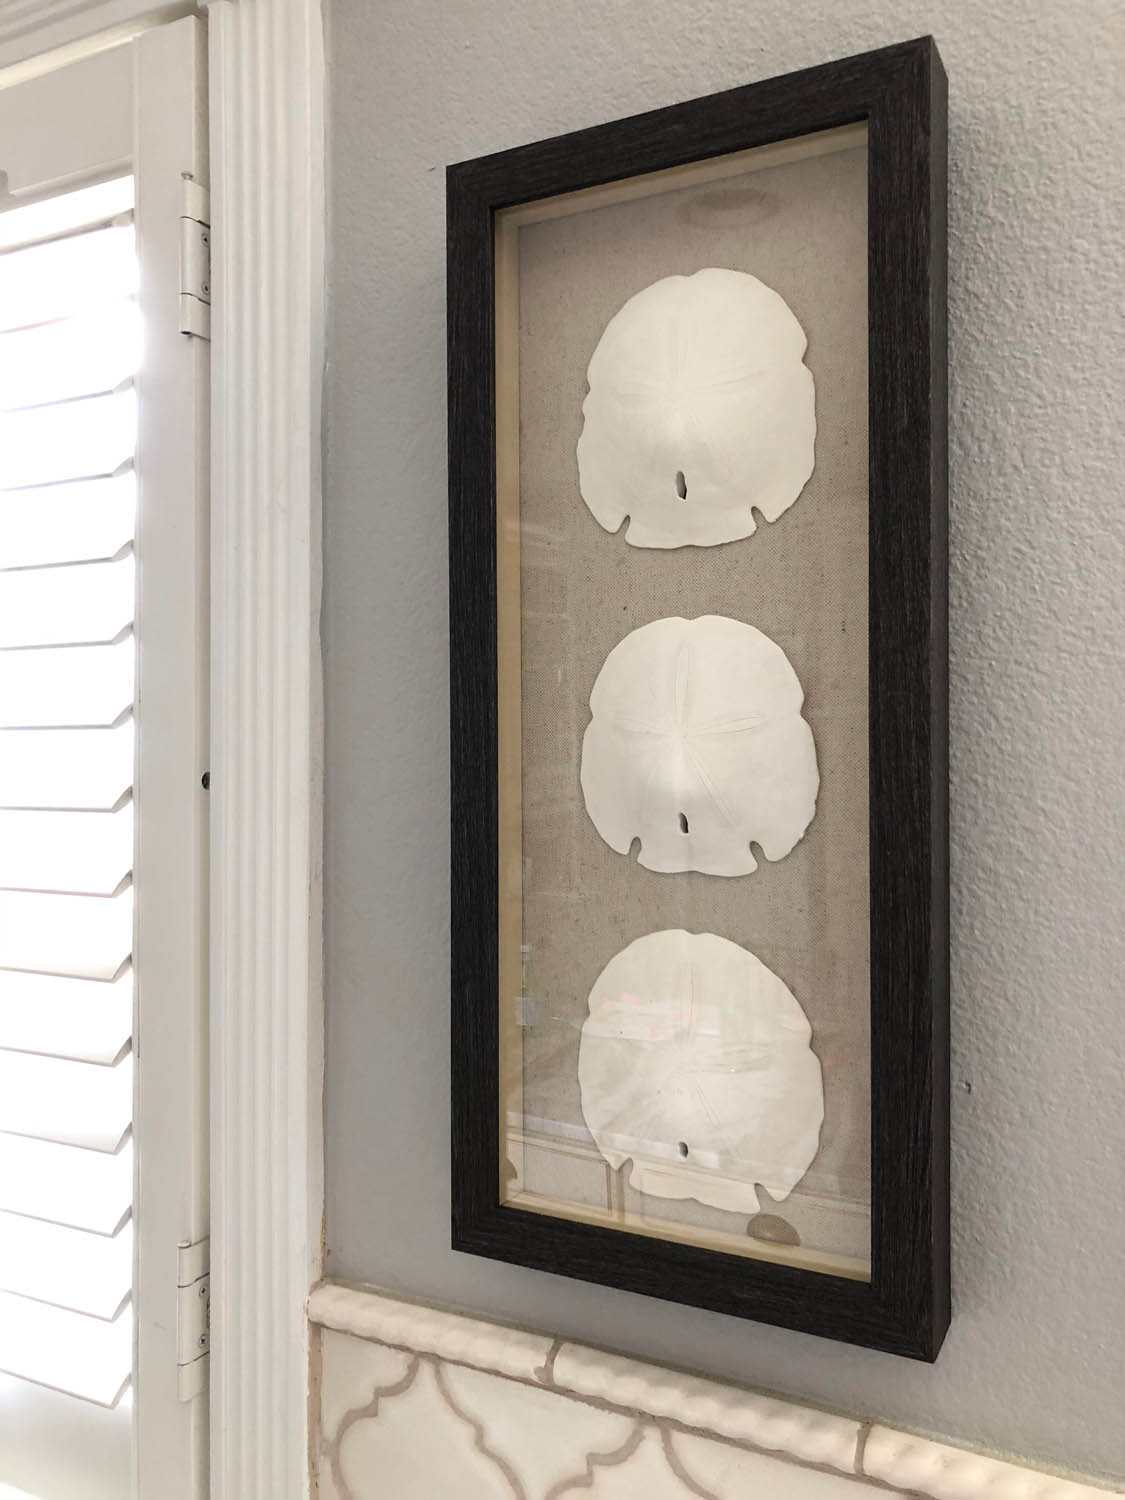 Genuine Seashells Sand Dollar Memory Collection Shadow Box Display Ideas Yarn Scissors Silk Shadow Box Ideas Army Shadow Box Ideas Diy Shadow Box Ideas houzz-02 Shadow Box Ideas